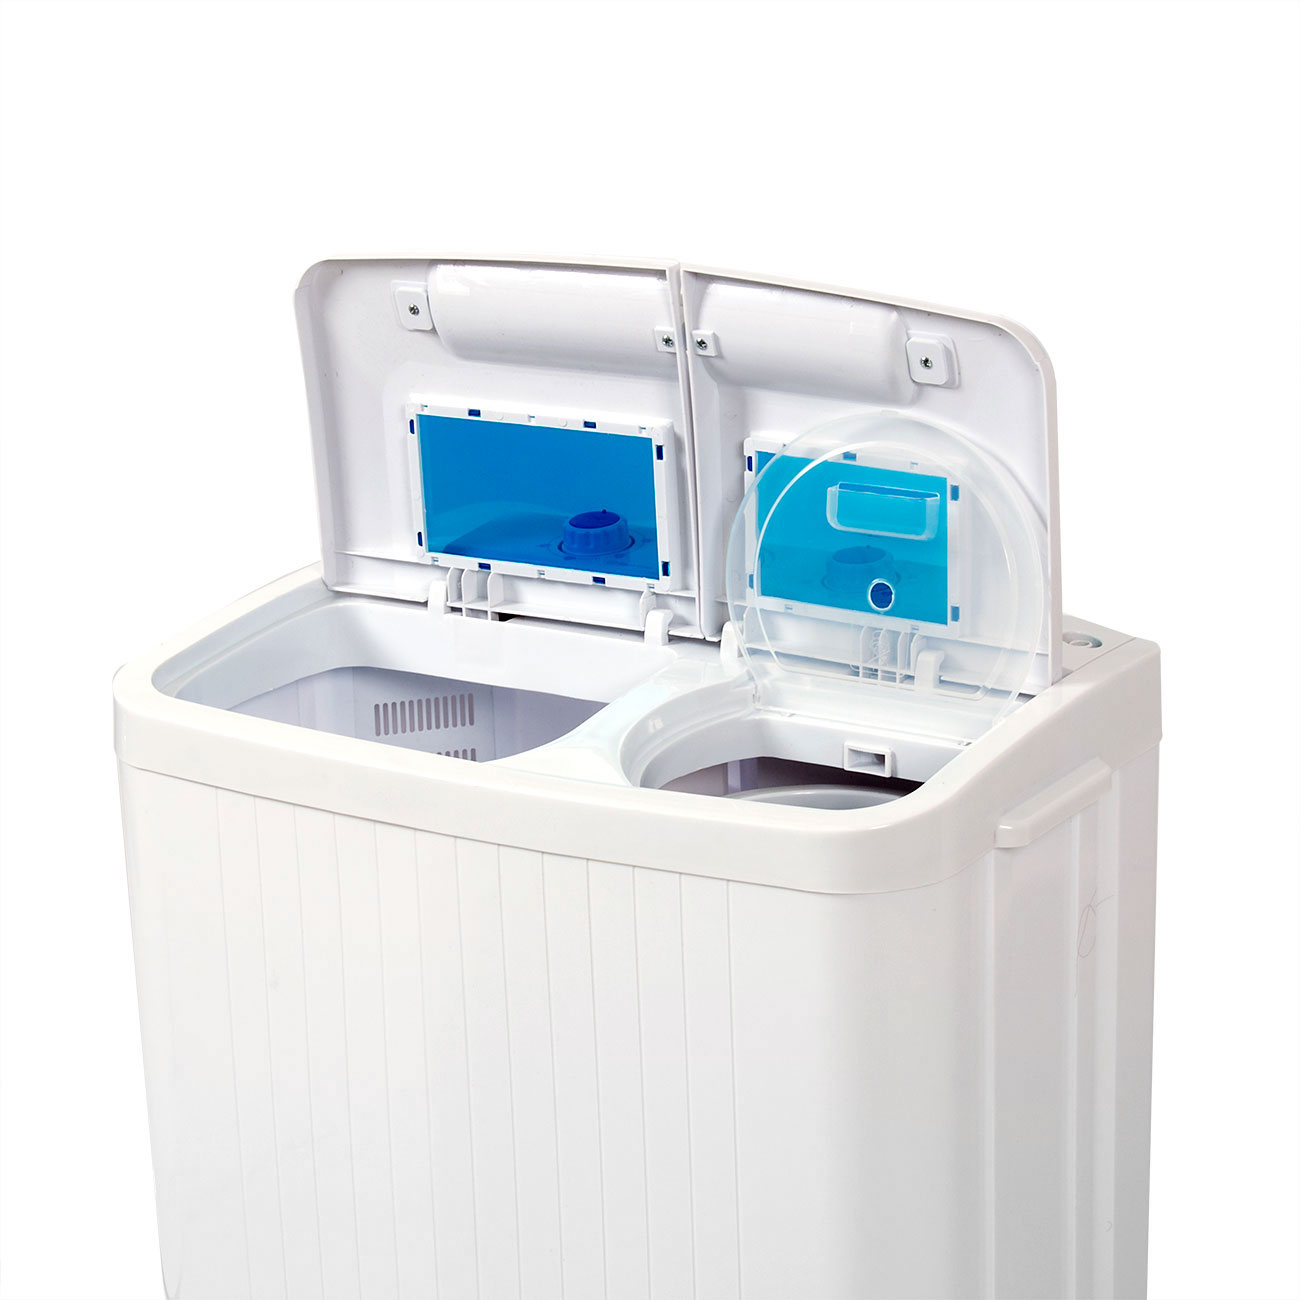 Portable Washing Machine Compact Wash Spin Dry Cycle